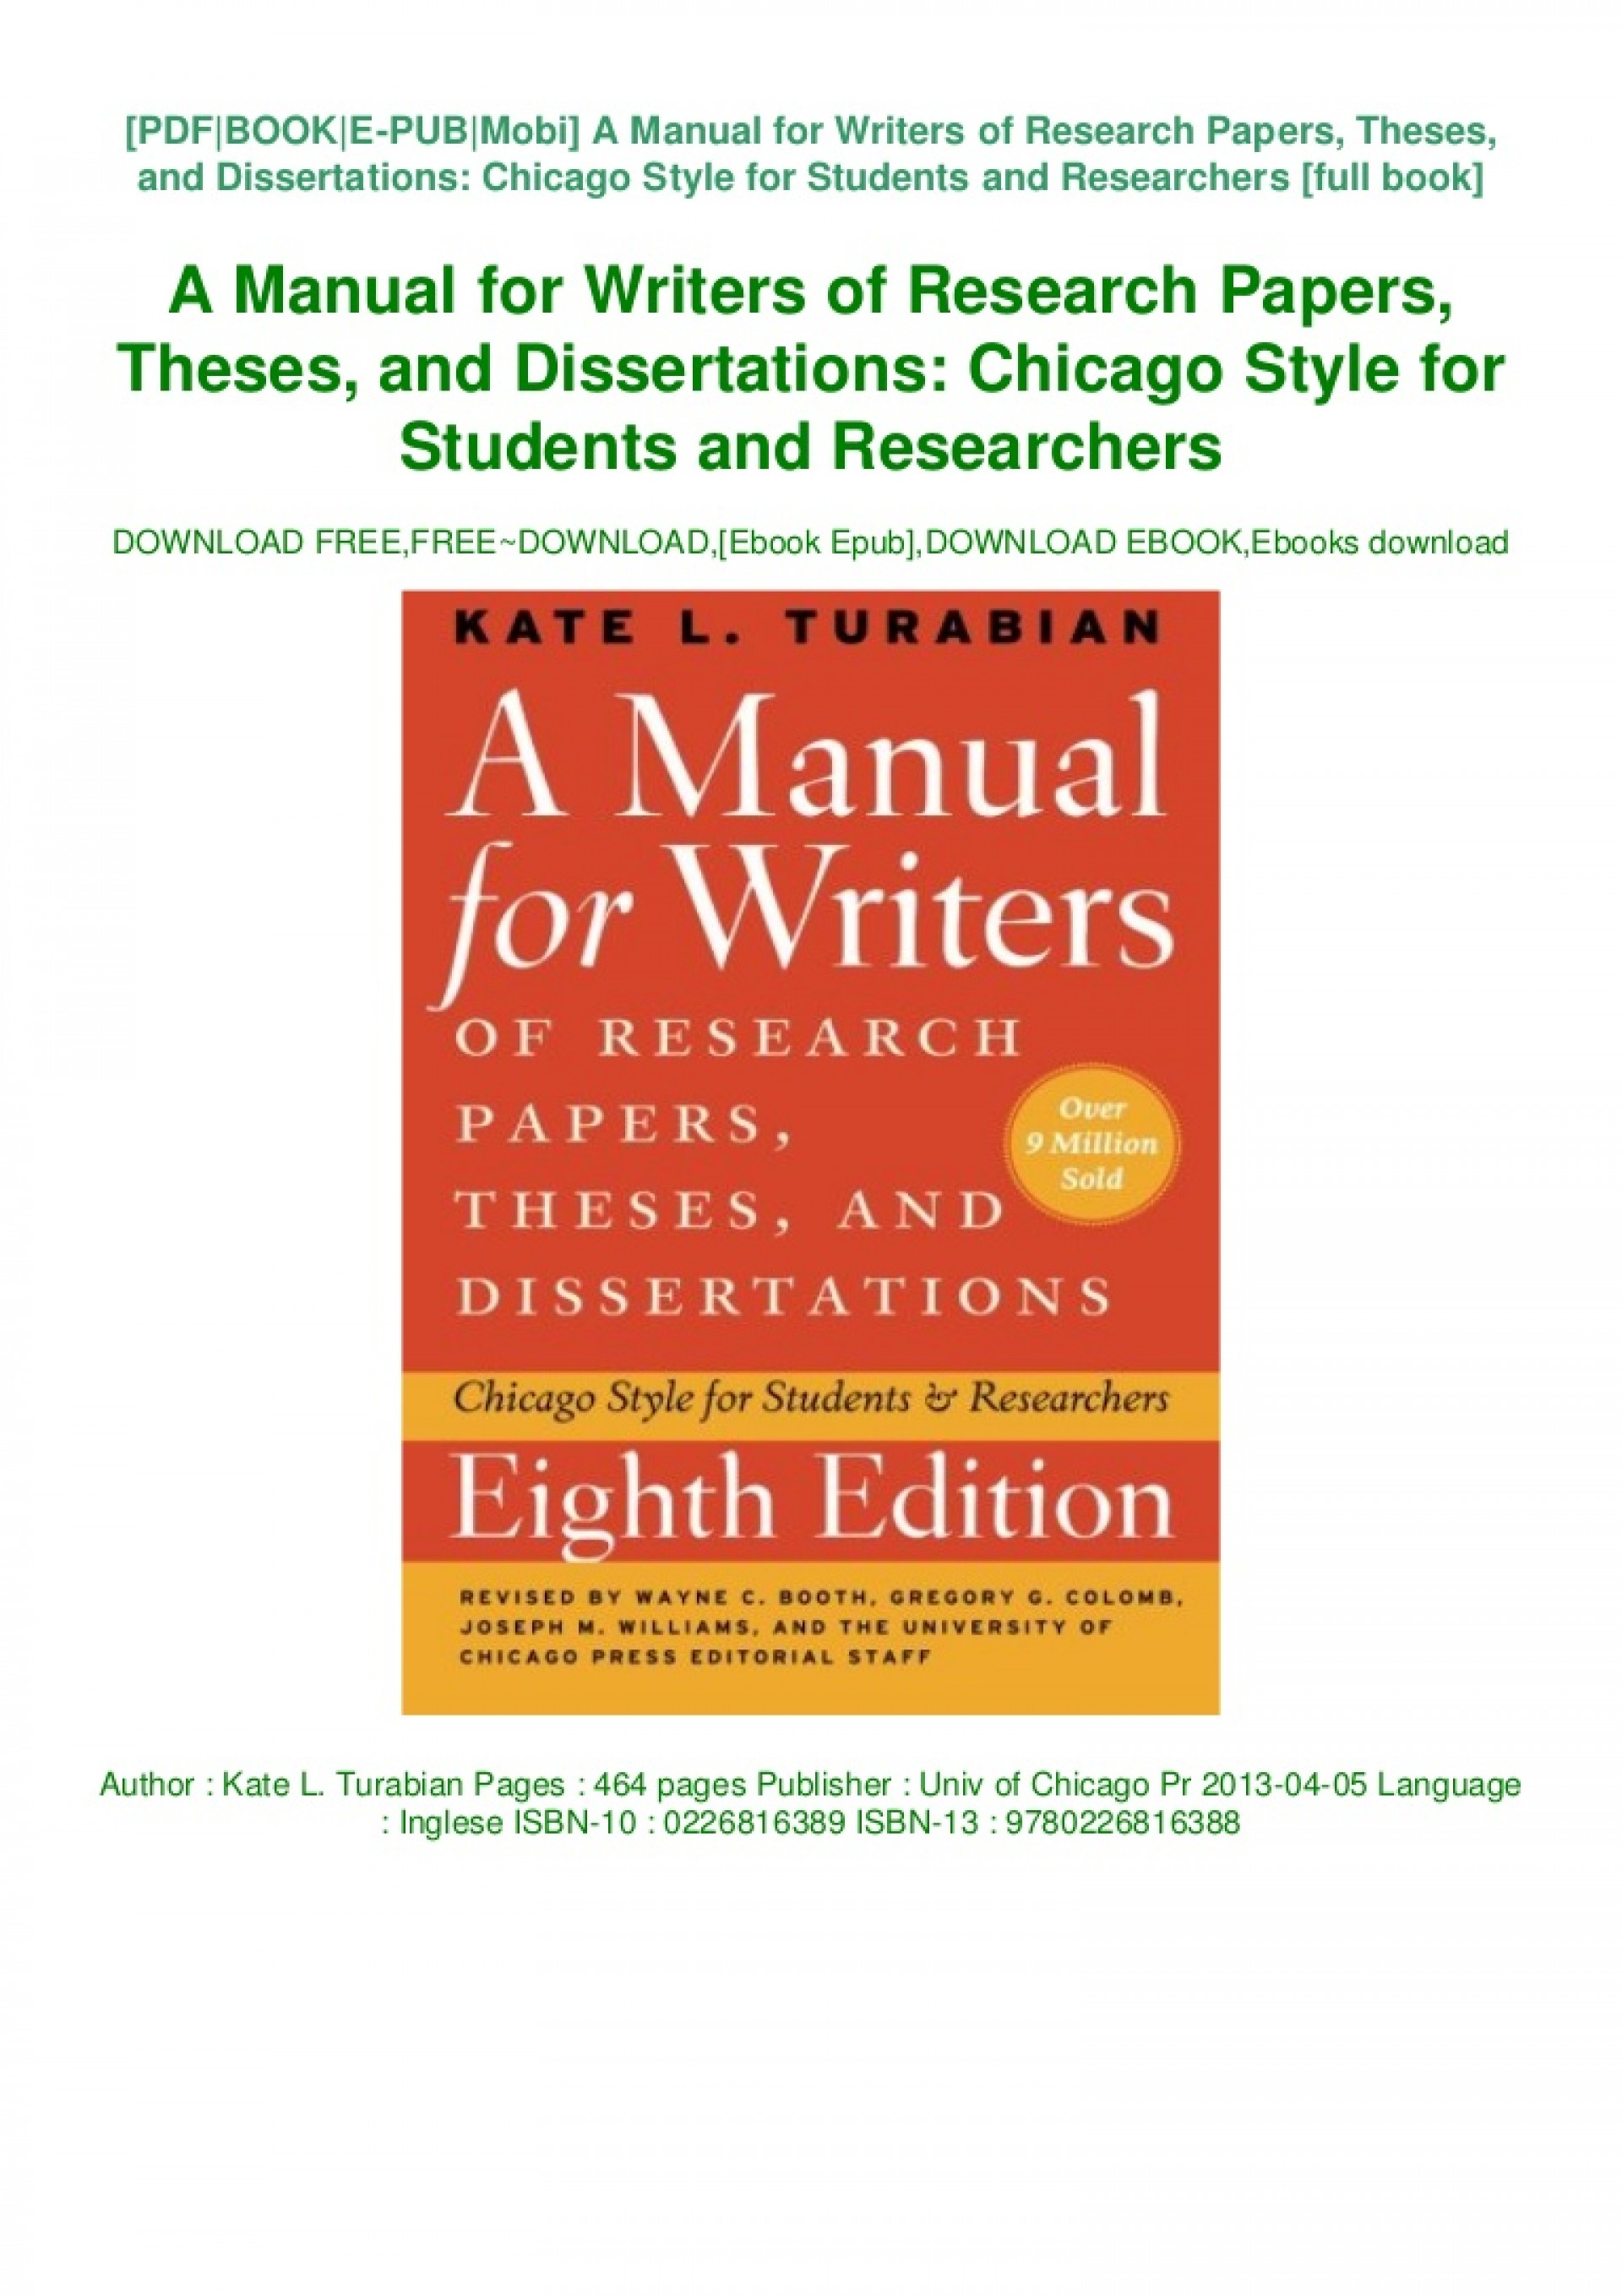 005 Manual For Writers Of Researchs Theses And Dissertations Book Thumbnail Magnificent Research Papers A Amazon 9th Edition Pdf 8th 13 1920